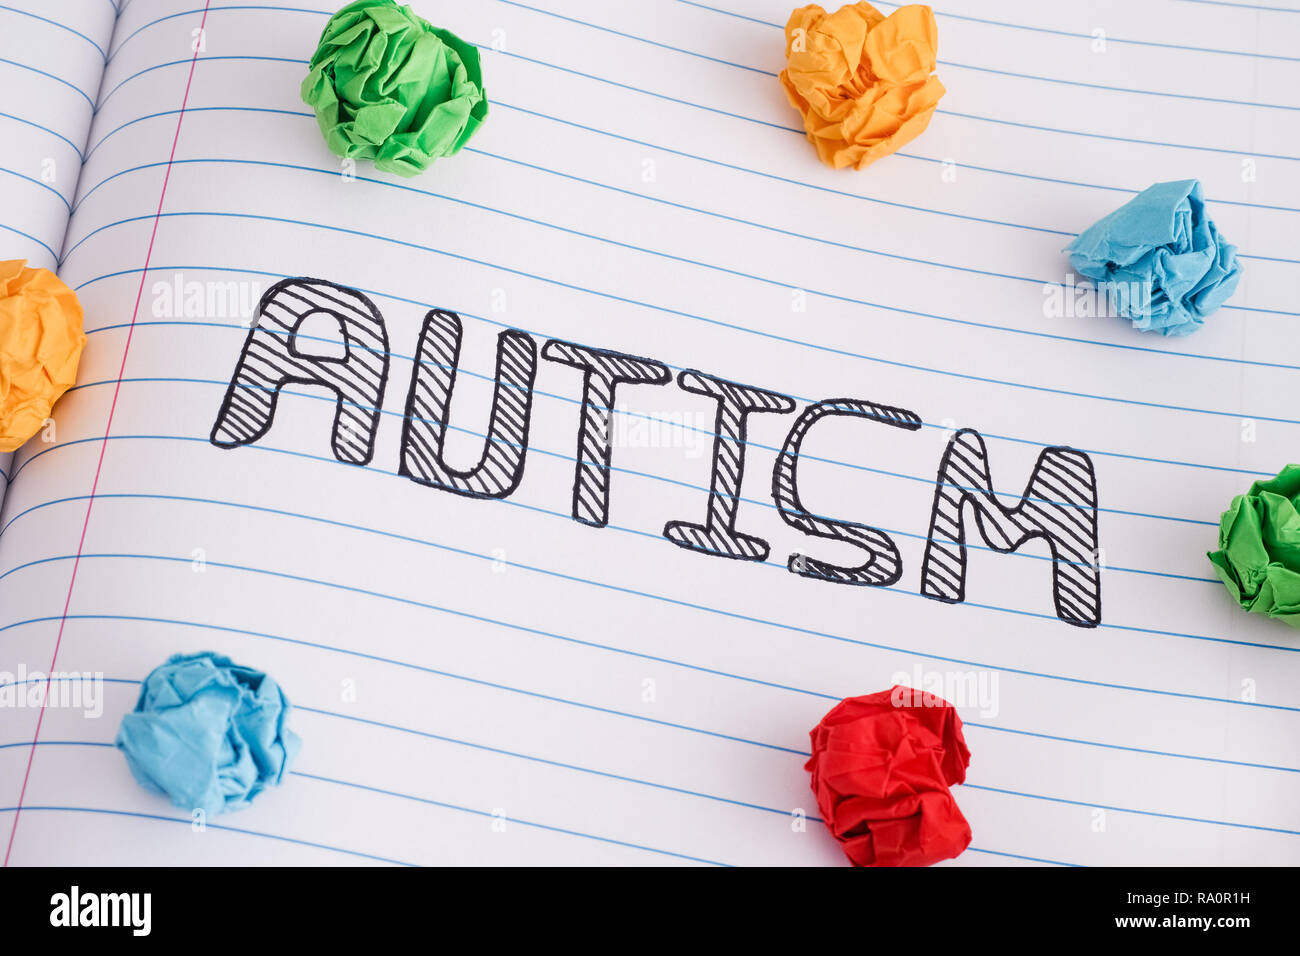 Autism. Autism spectrum disorder. Autism word on notebook sheet with some colorful crumpled paper balls on it. Close up. - Stock Image